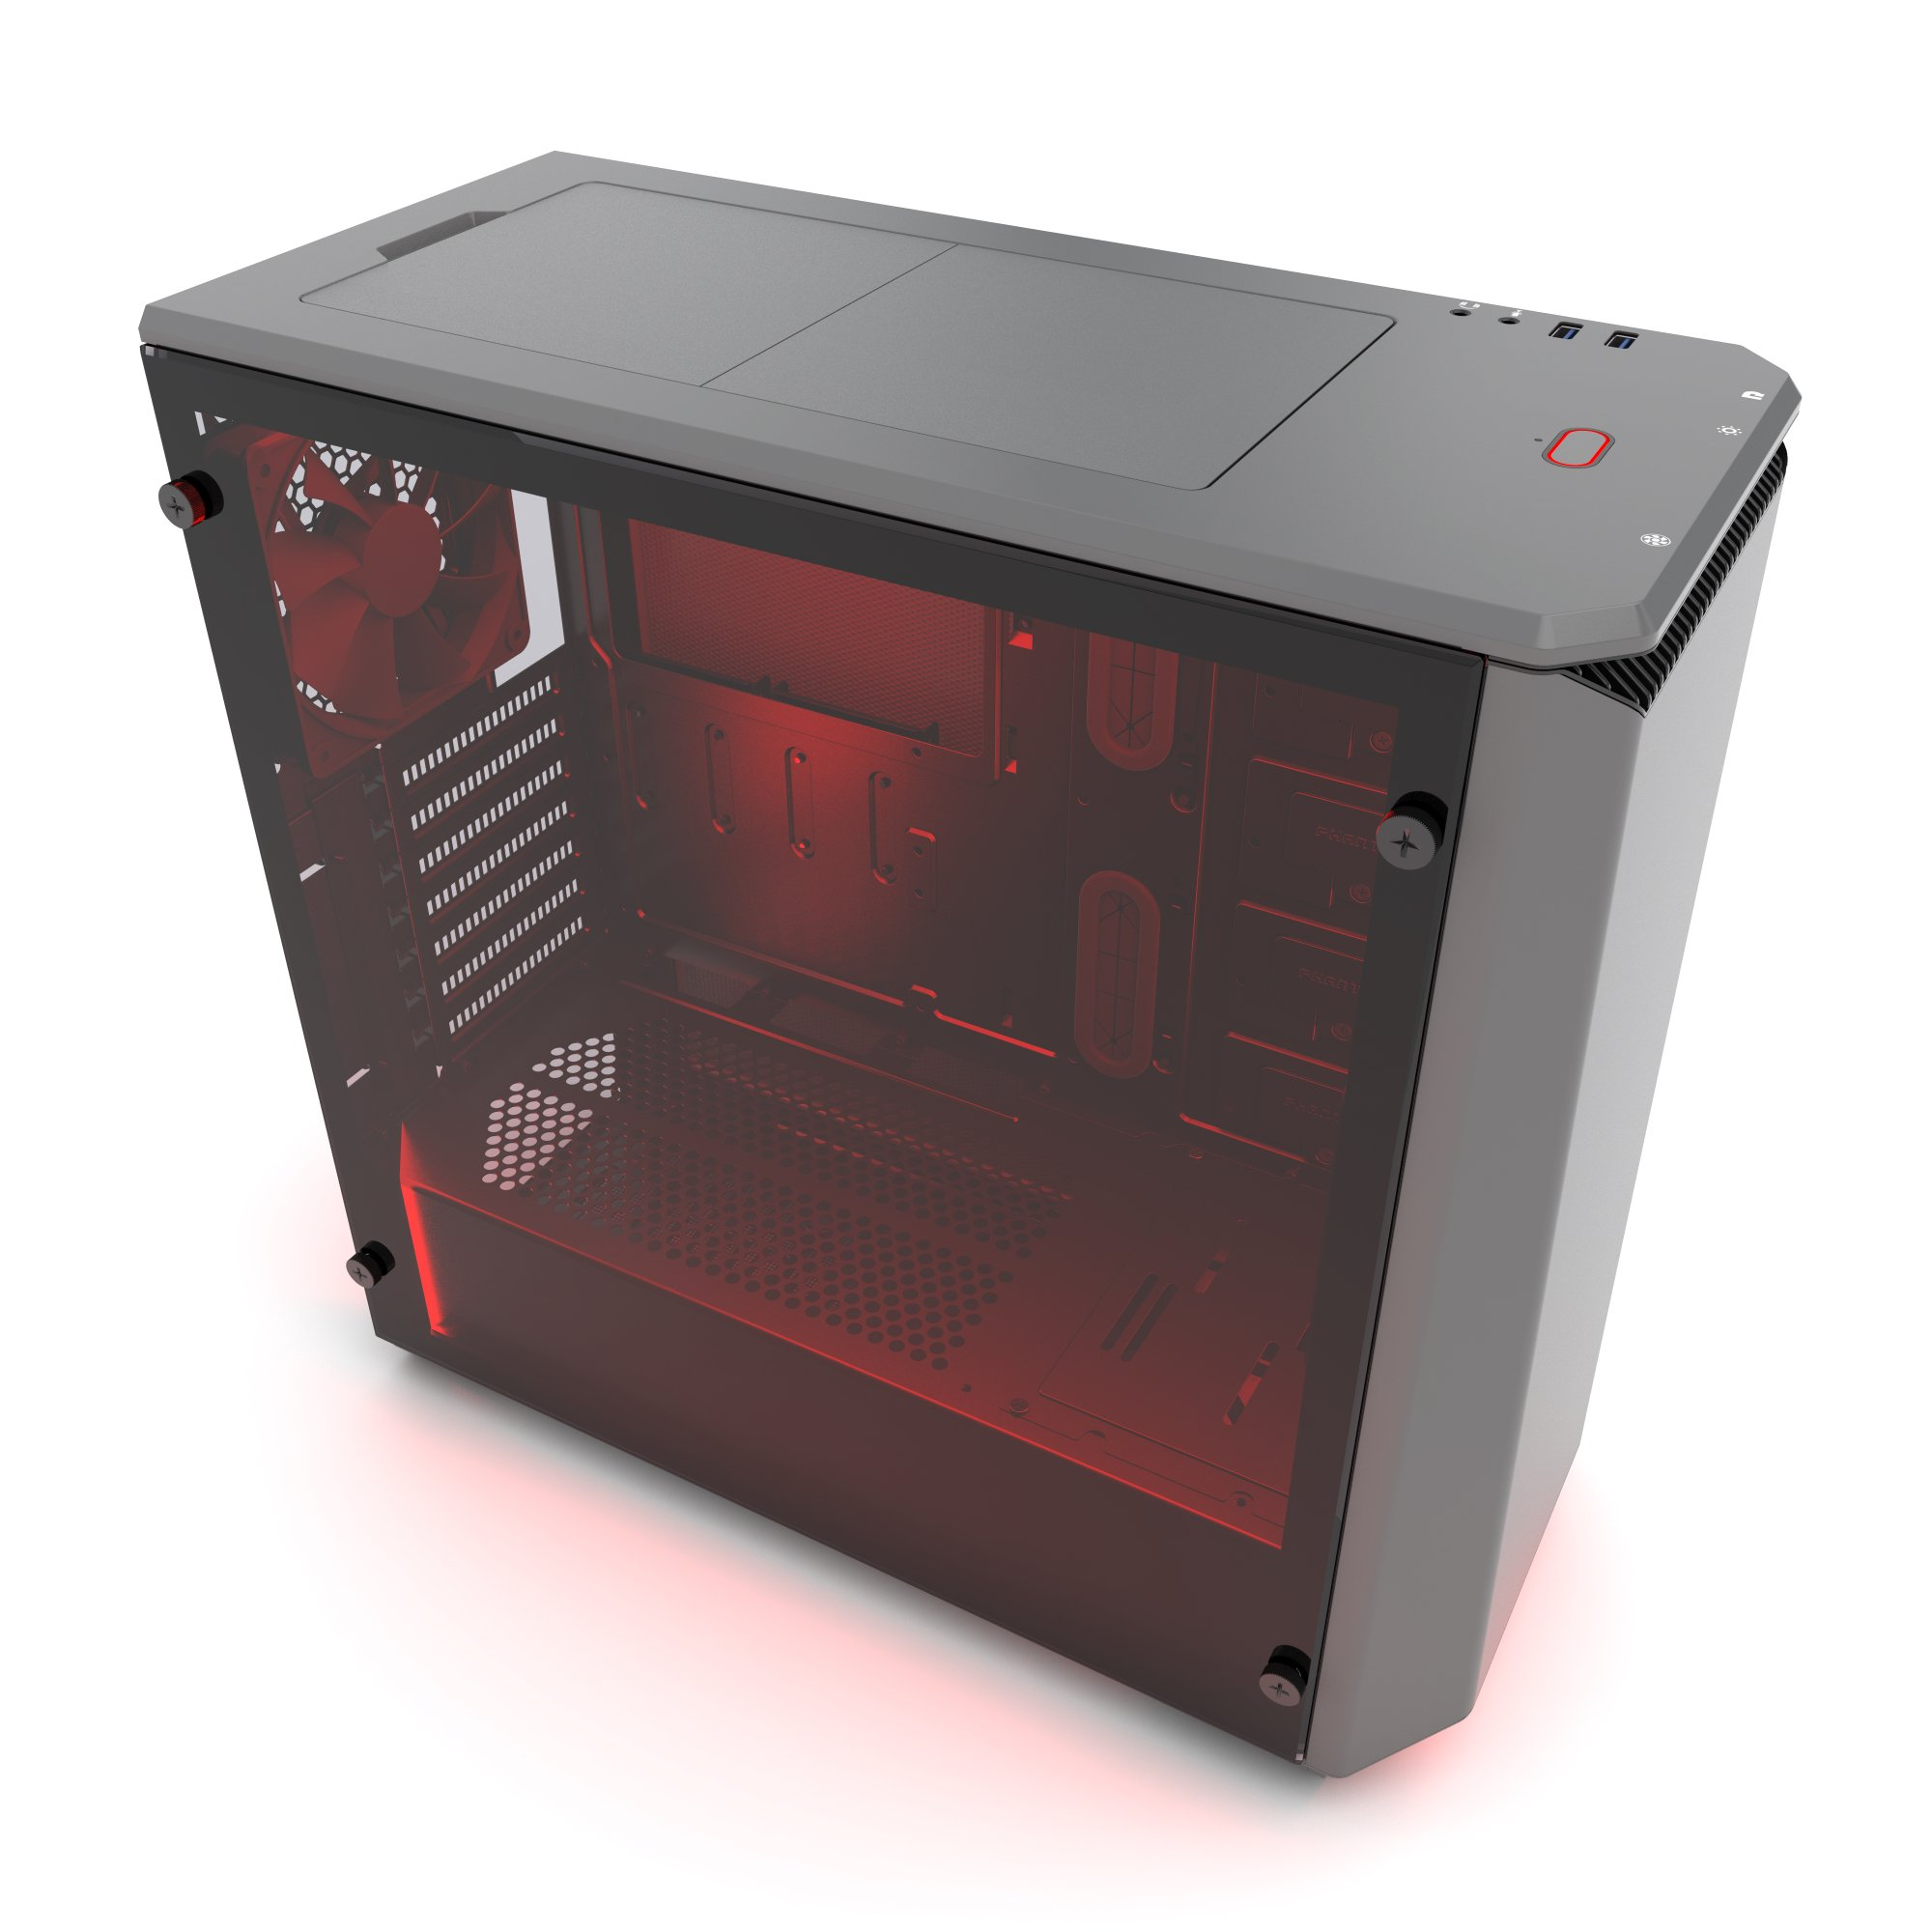 Phanteks PH-EC416PSTG_AG Eclipse P400S Silent Edition with Tempered Glass, Anthracite Grey Cases by Phanteks (Image #2)